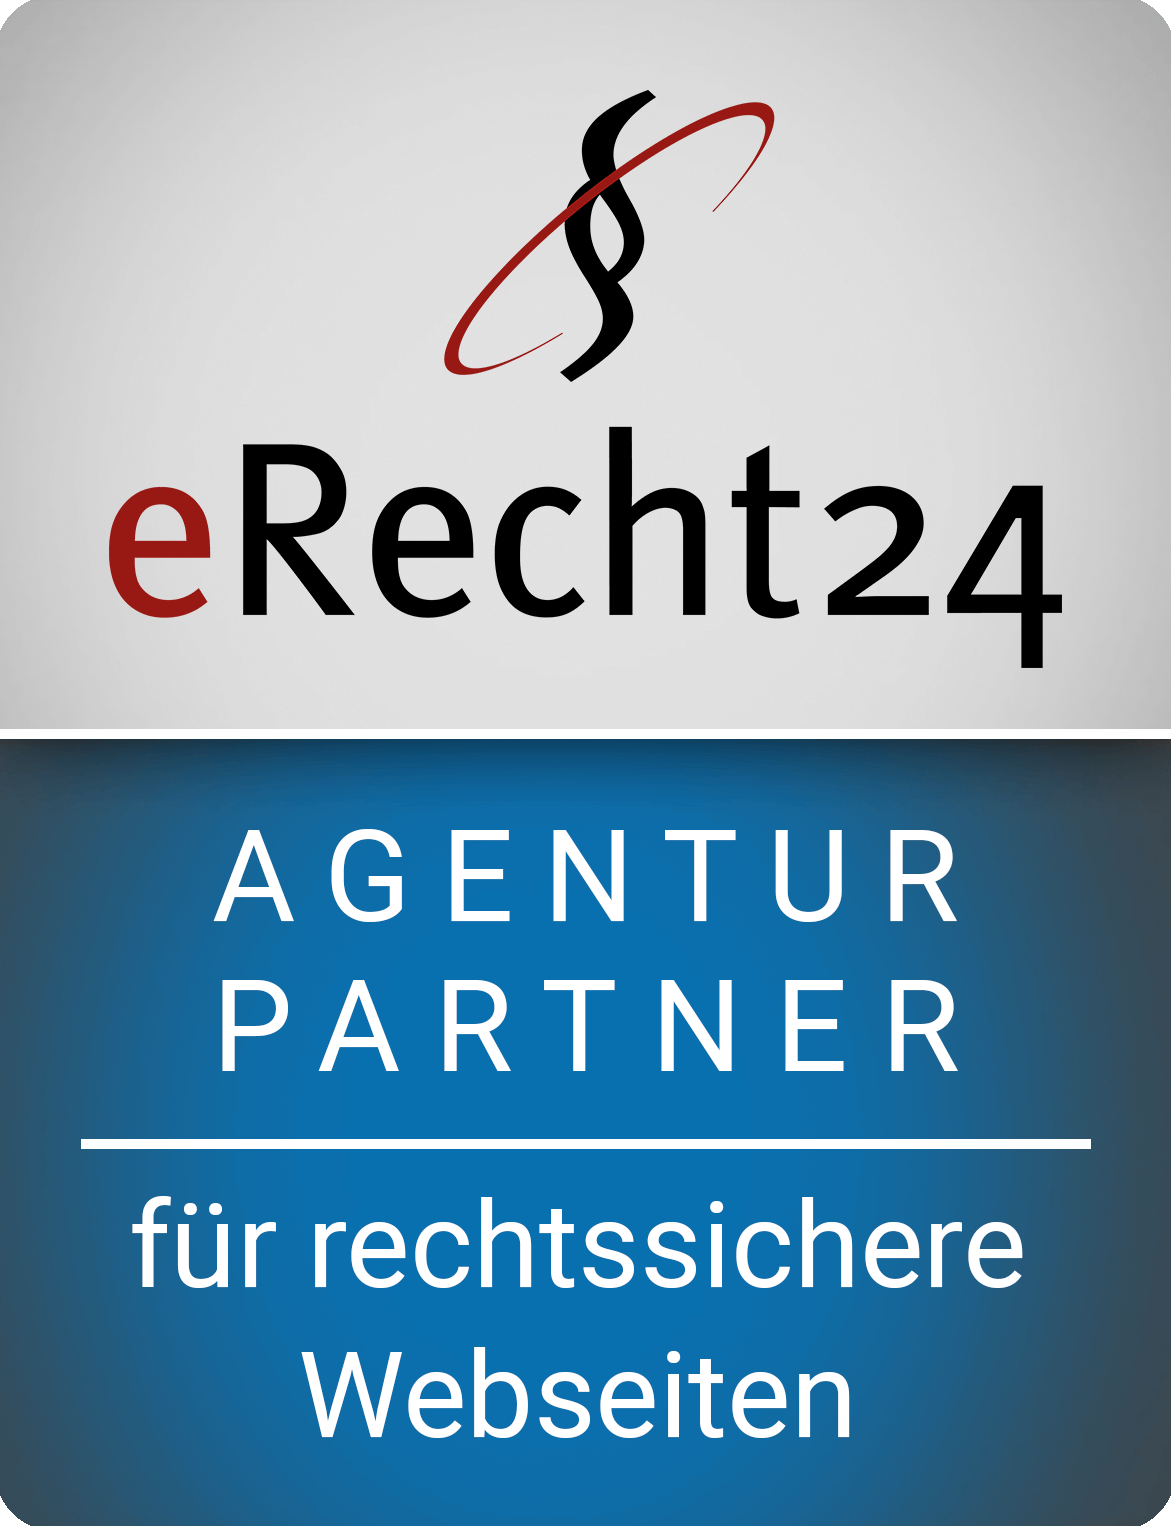 erecht 24 Agenturpartner